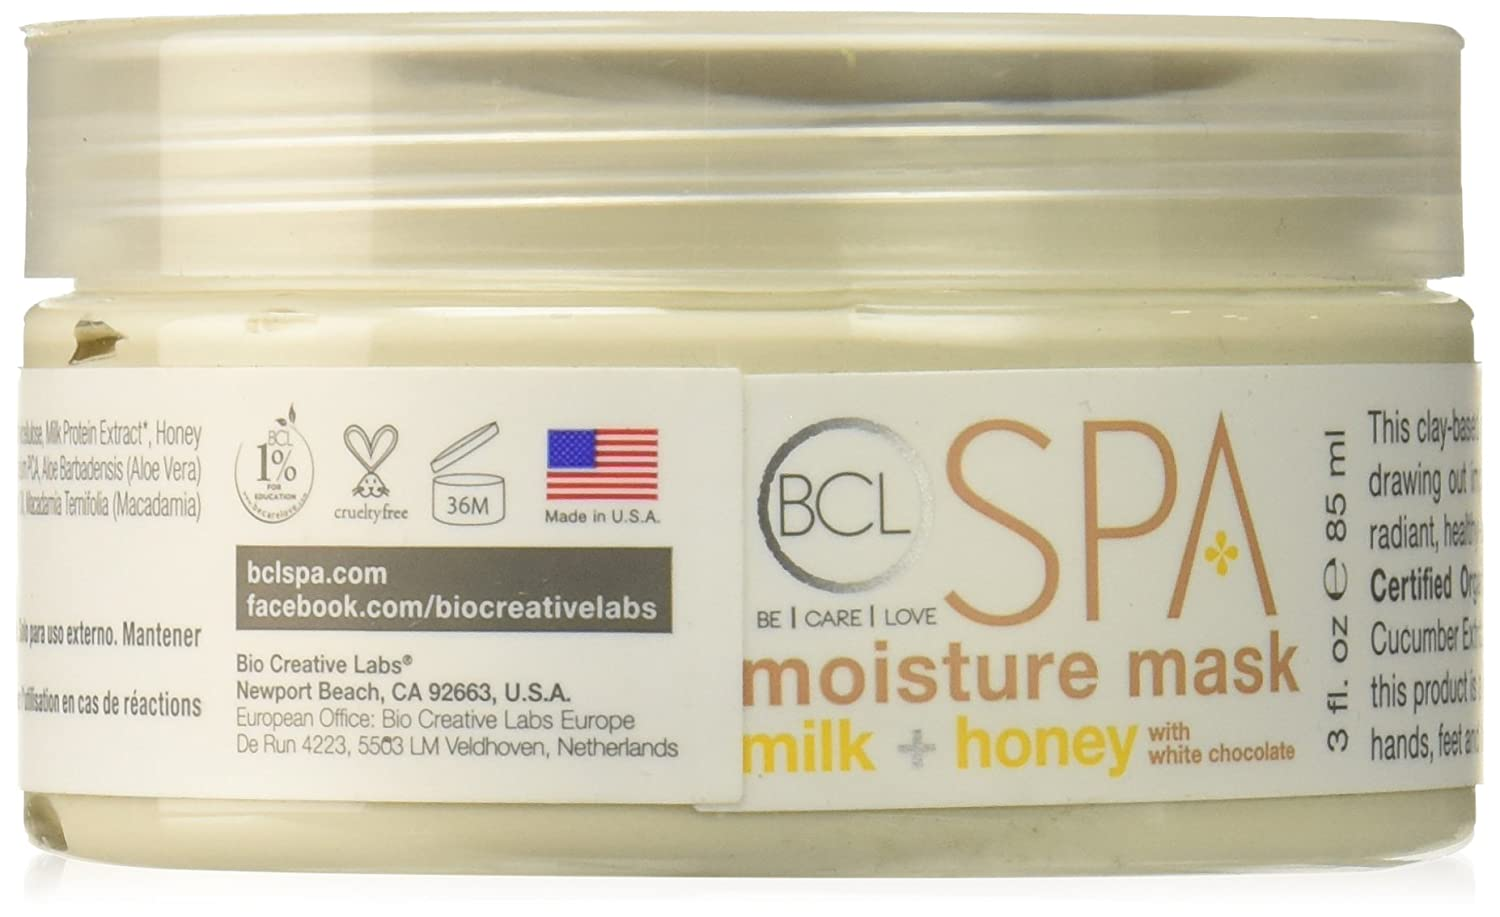 Bio Creative Lab Moisture Mask with White Chocolate, Milk/Honey